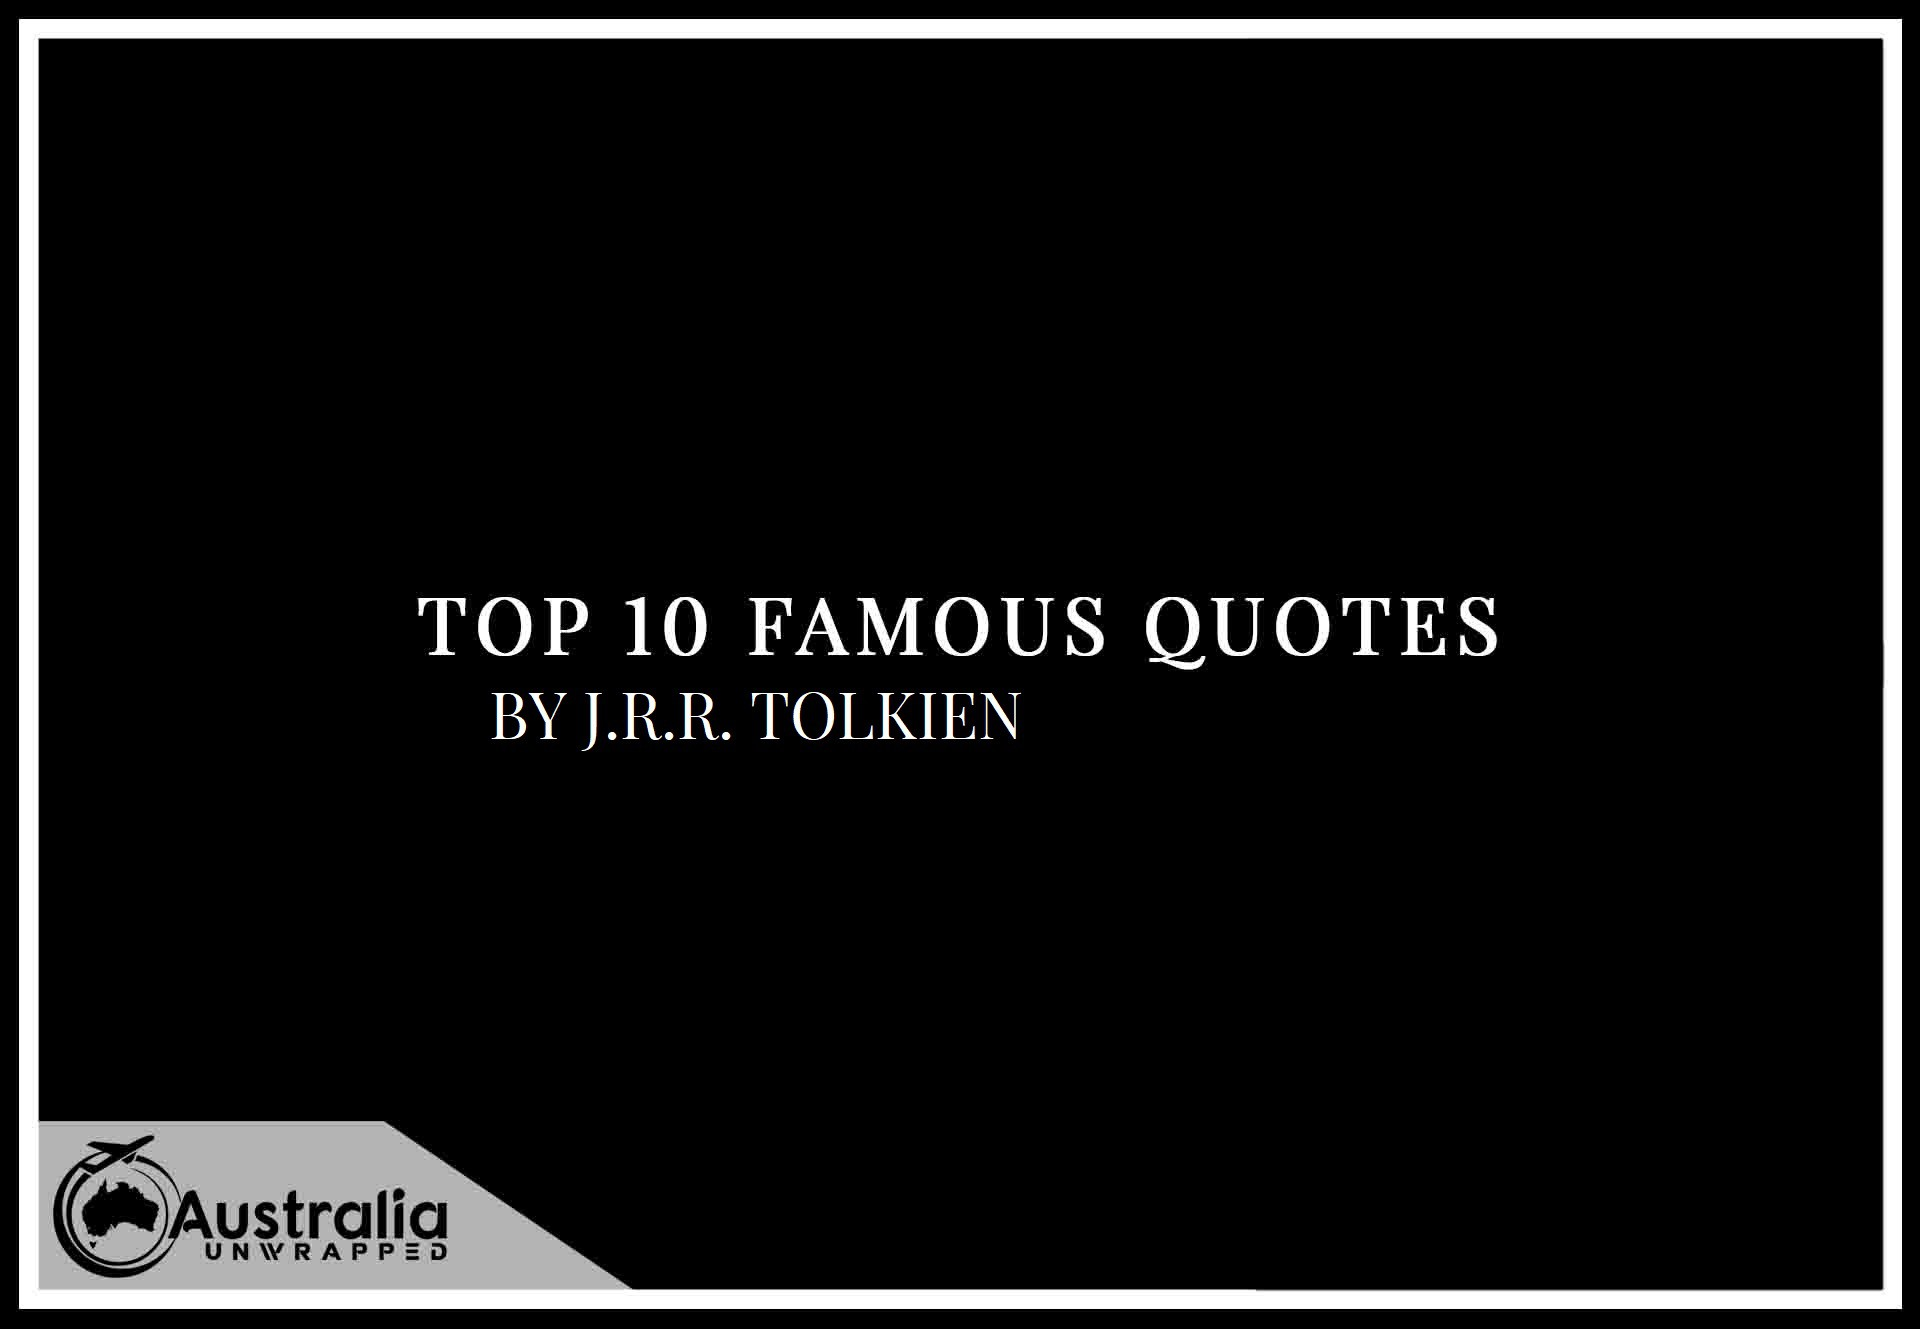 Top 10 Famous Quotes by Author J.R.R. Tolkien